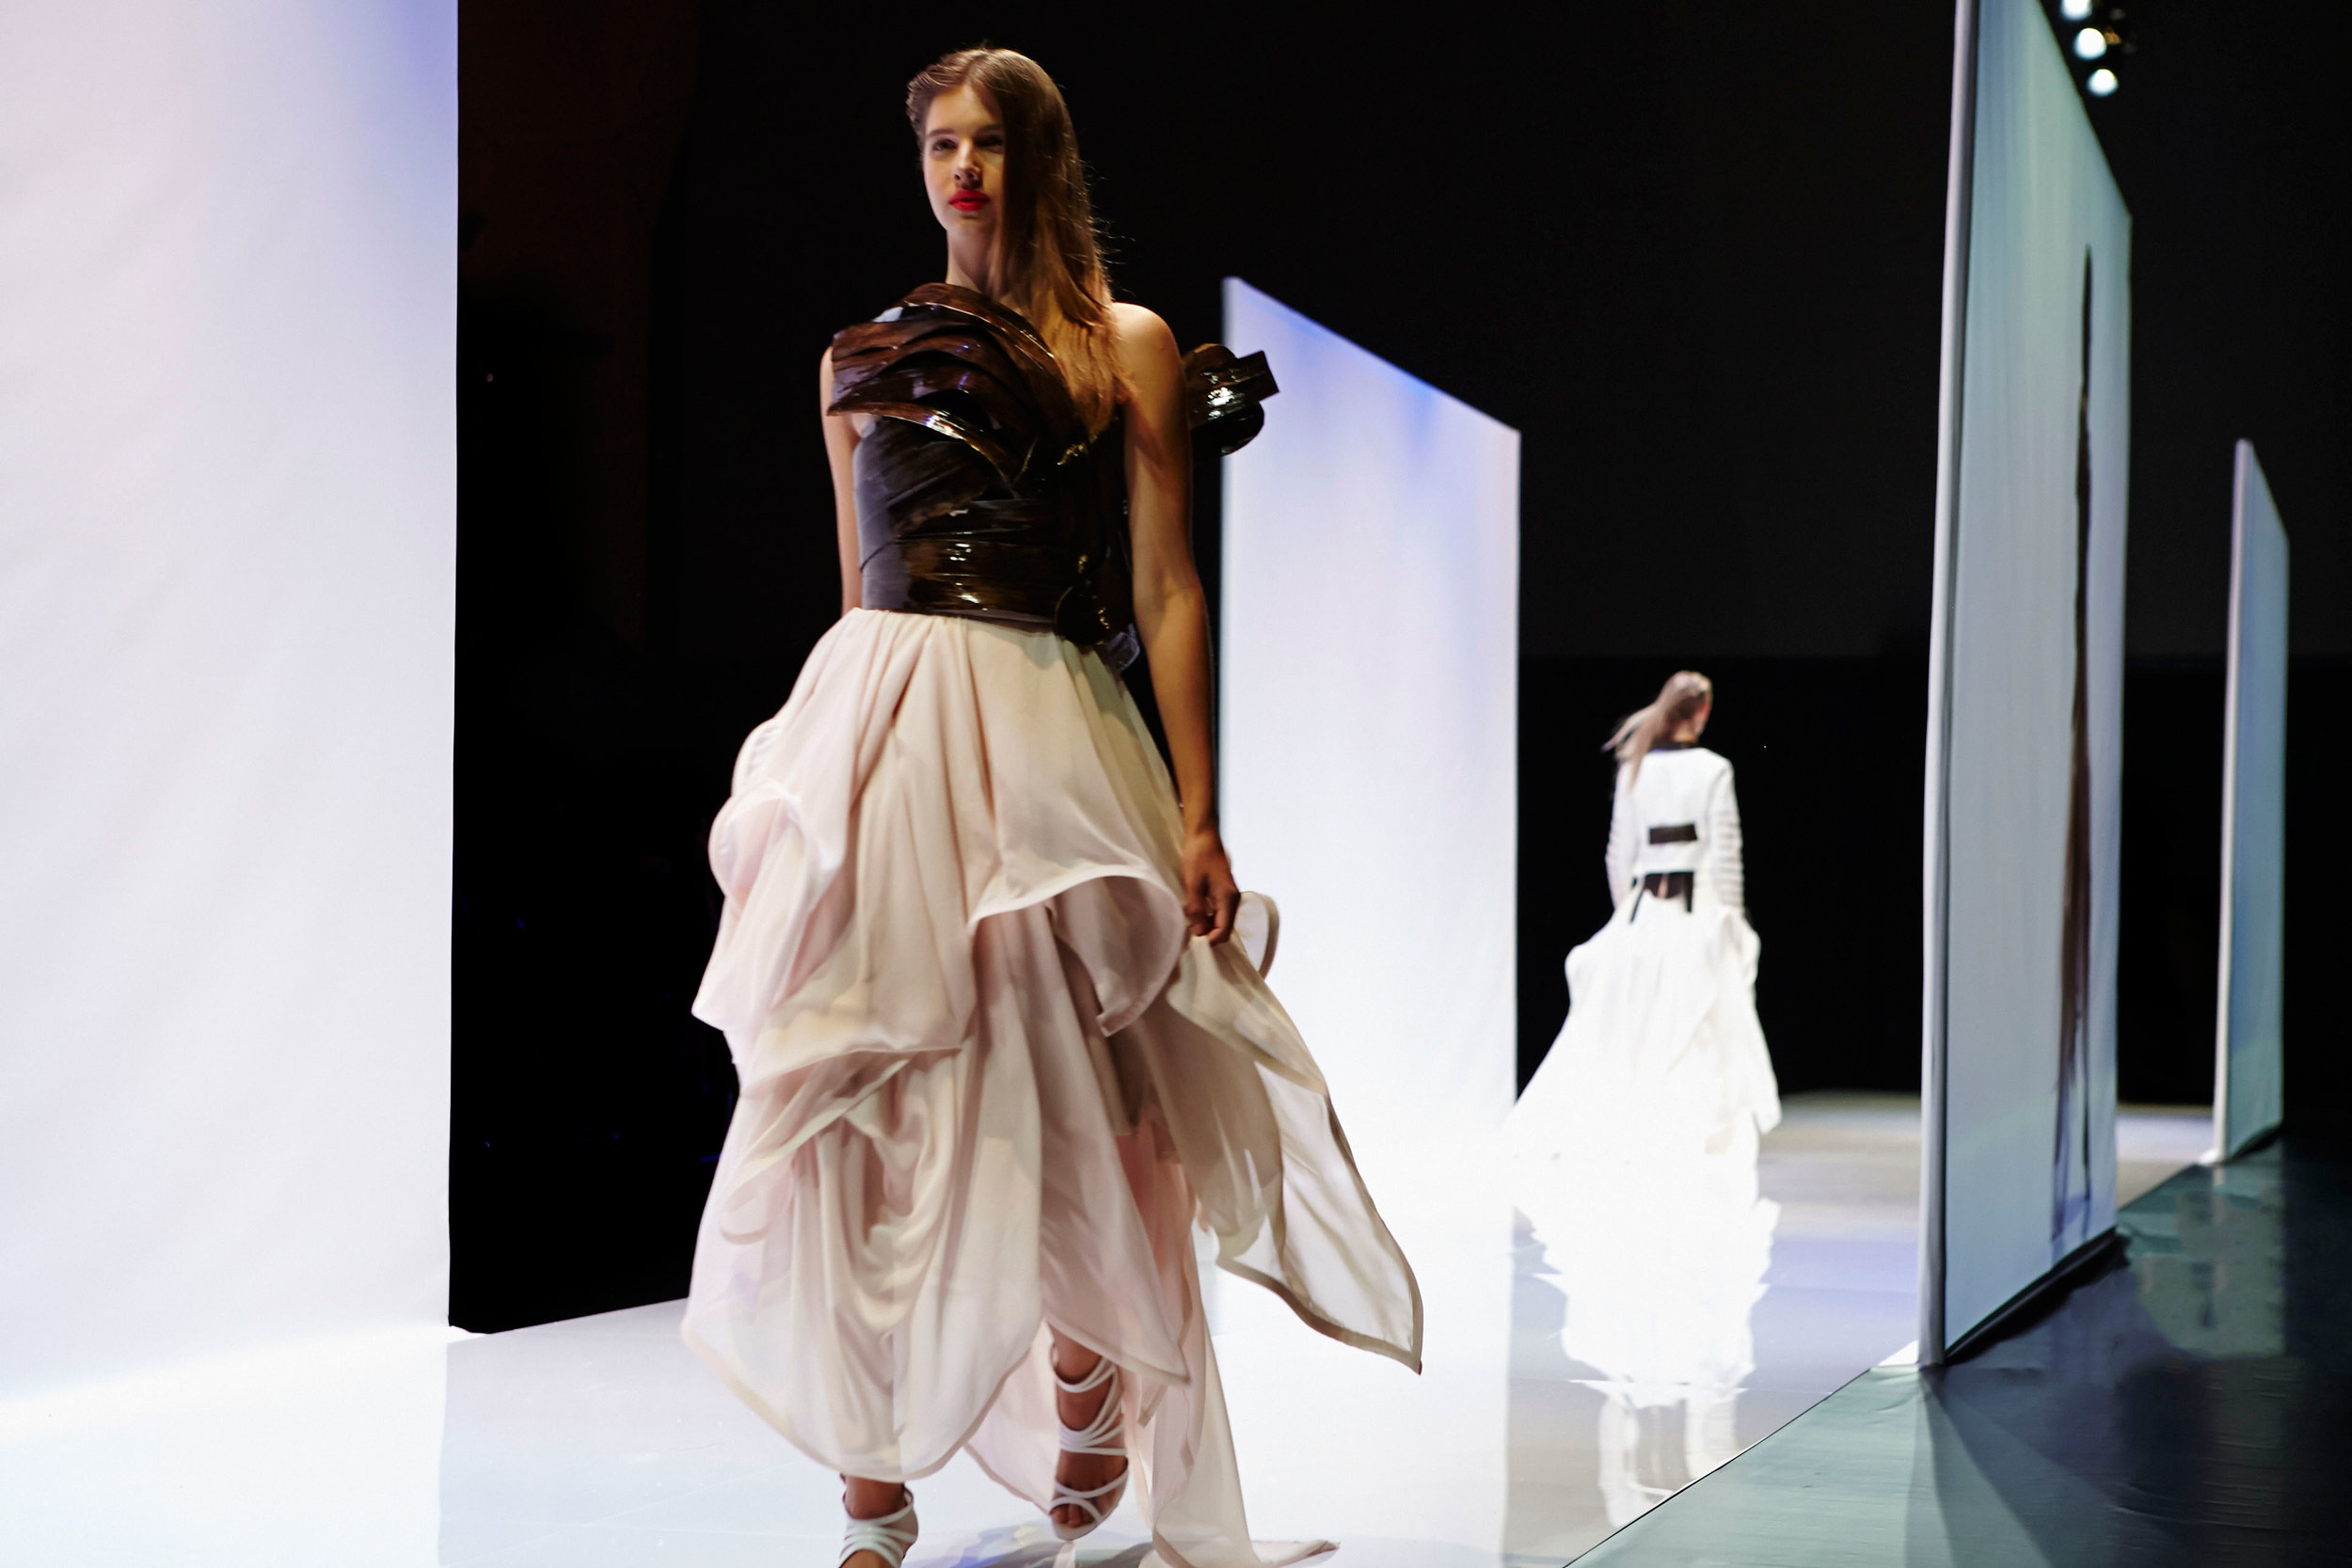 UTS-Fashion-Show-2014-Boris-Bresil-02.jpg